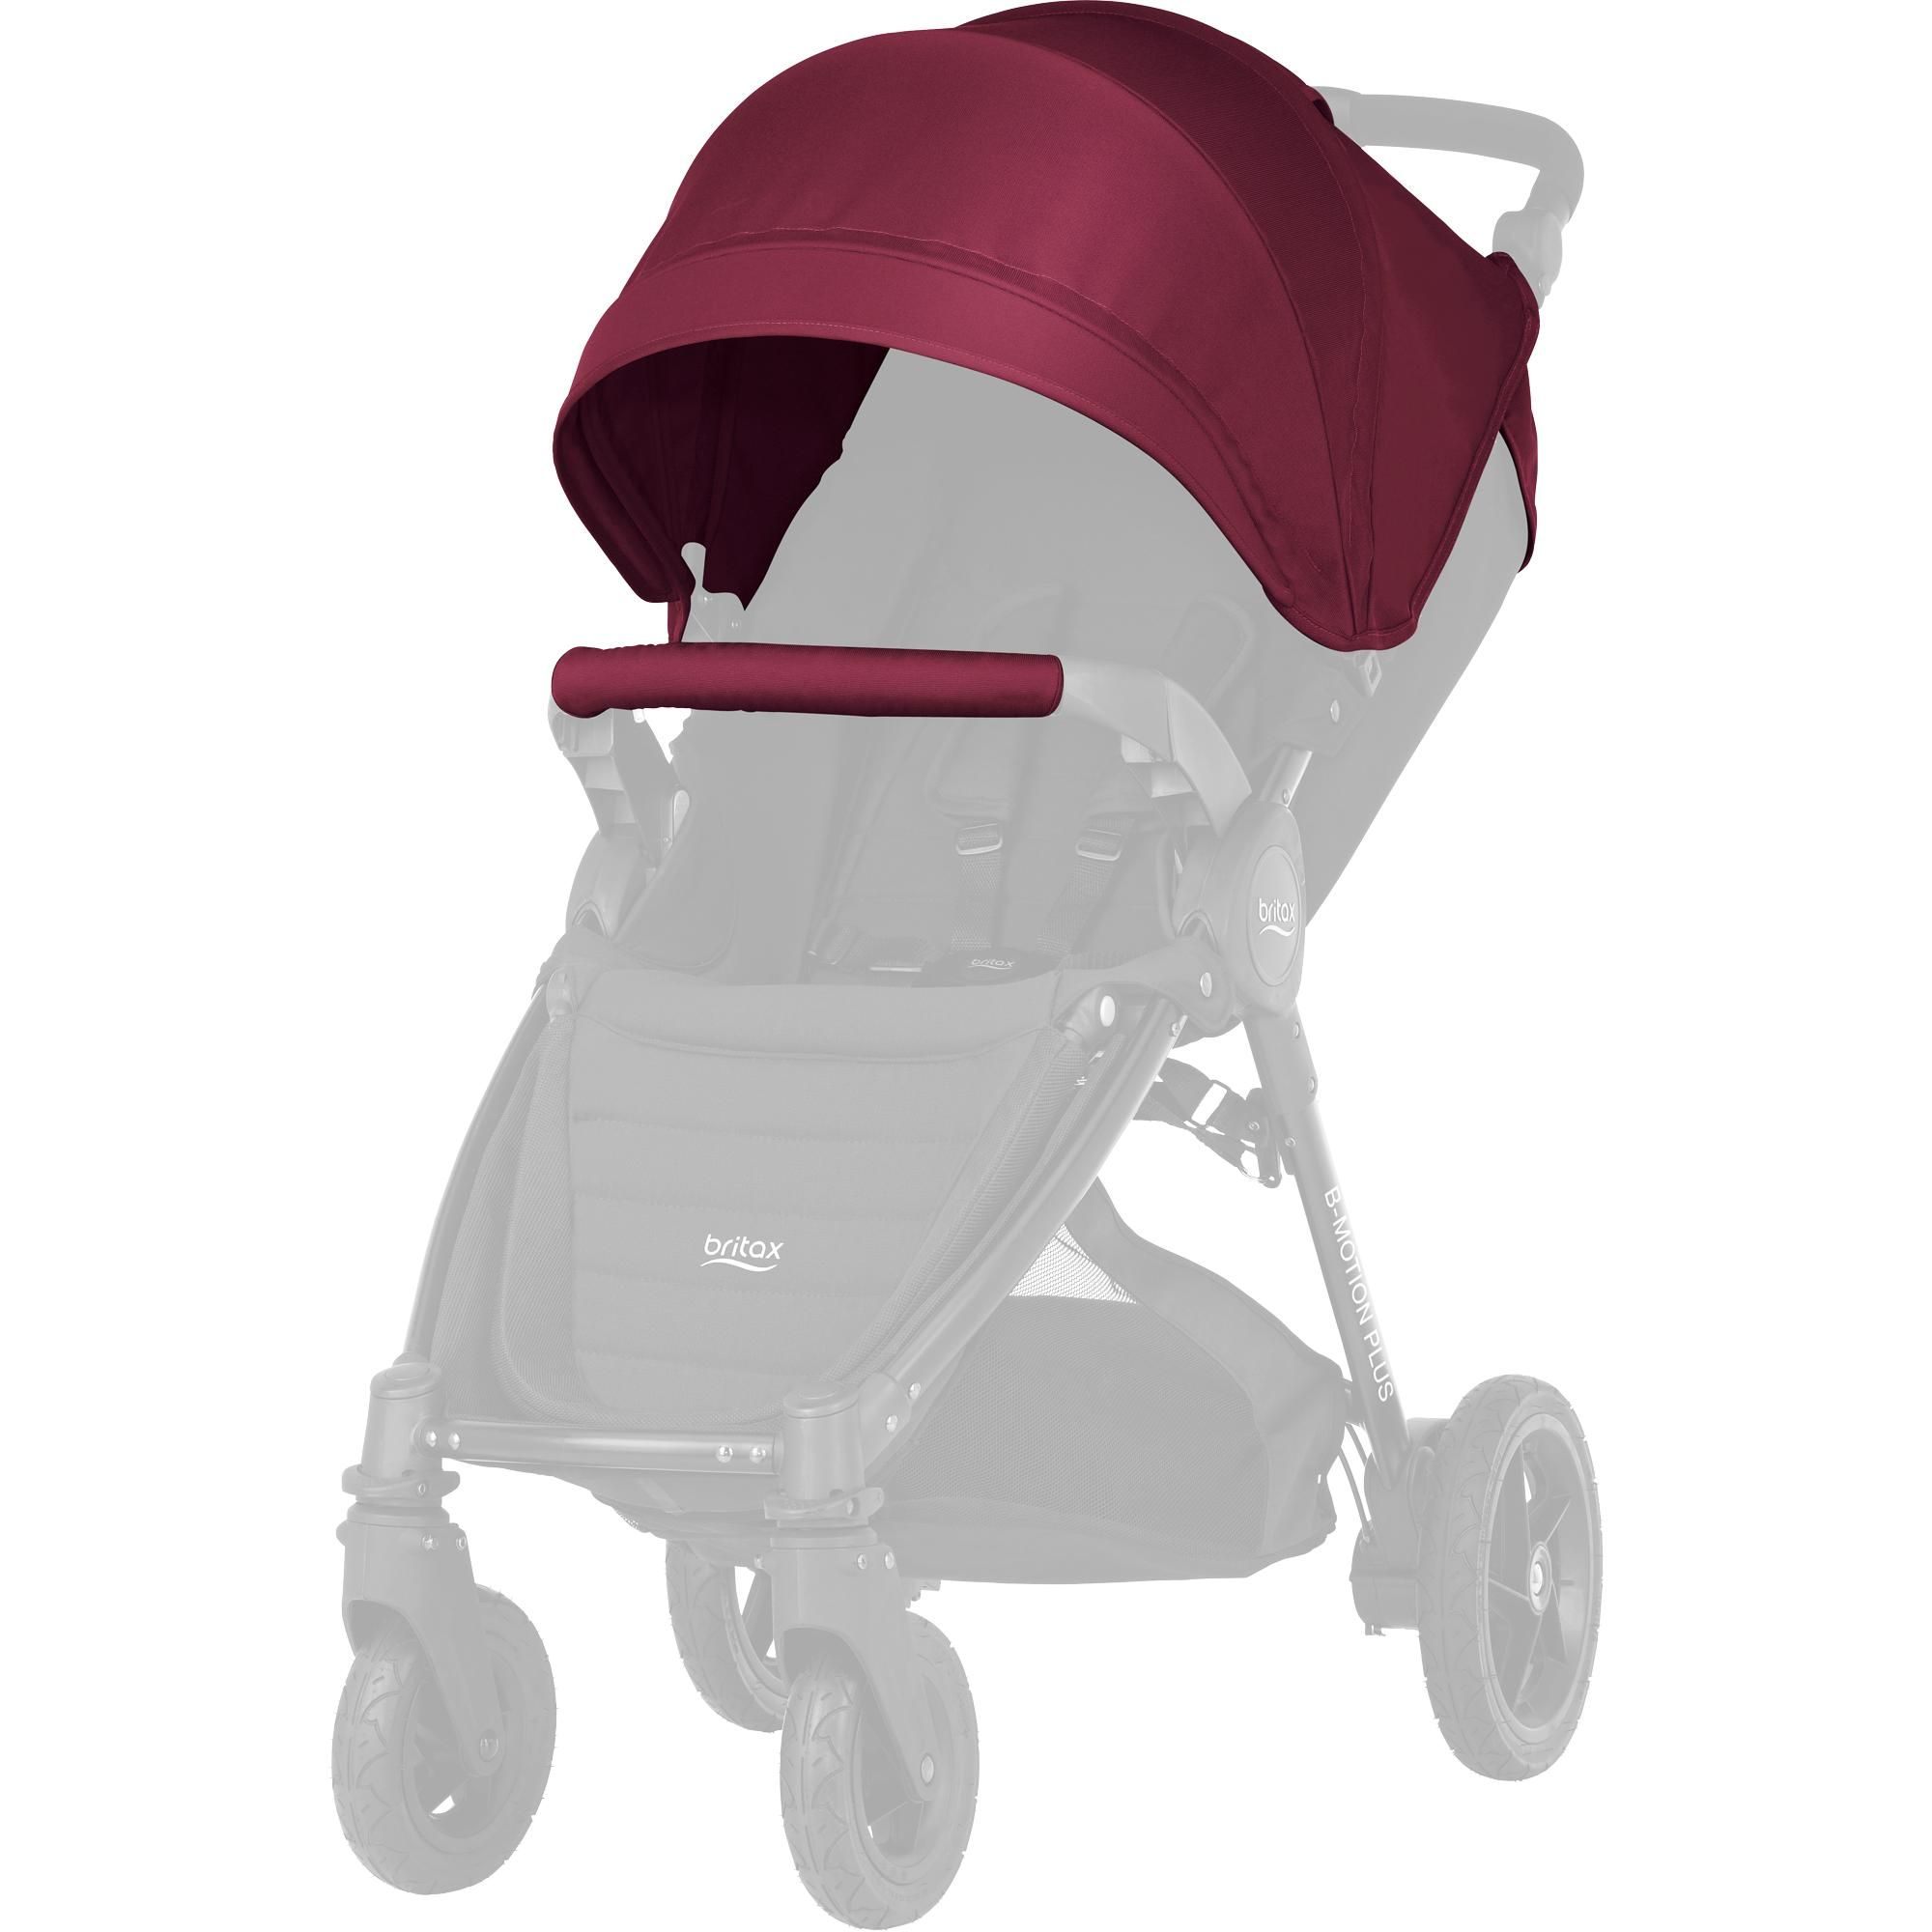 Britax farebný SET ku kočíkom B-Agile plus/B-Motion plus - Wine Red